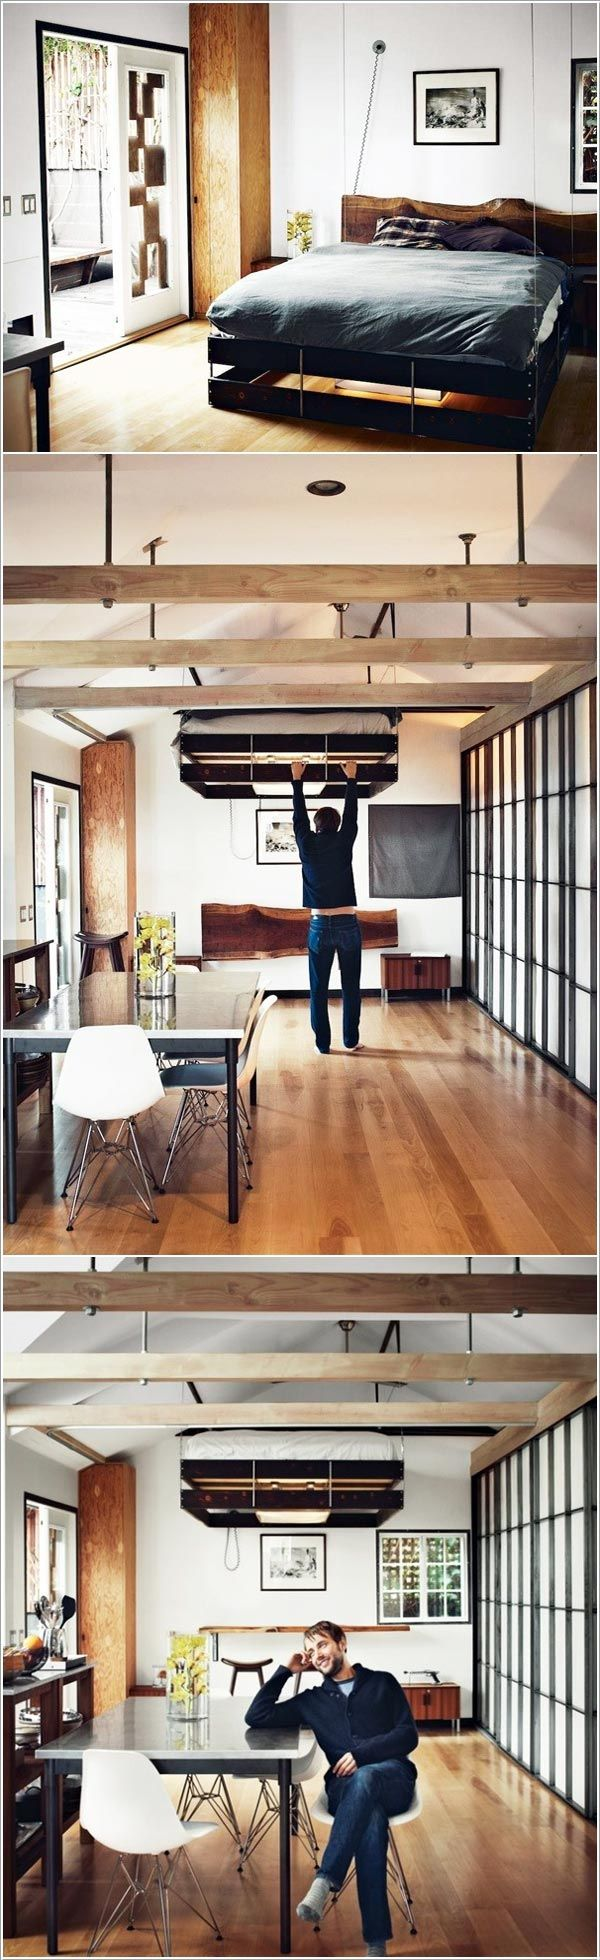 Shipping container music studio joy studio design gallery best - 23 Creative Design Ideas That Will Make Your House Awesome Thanks To Http